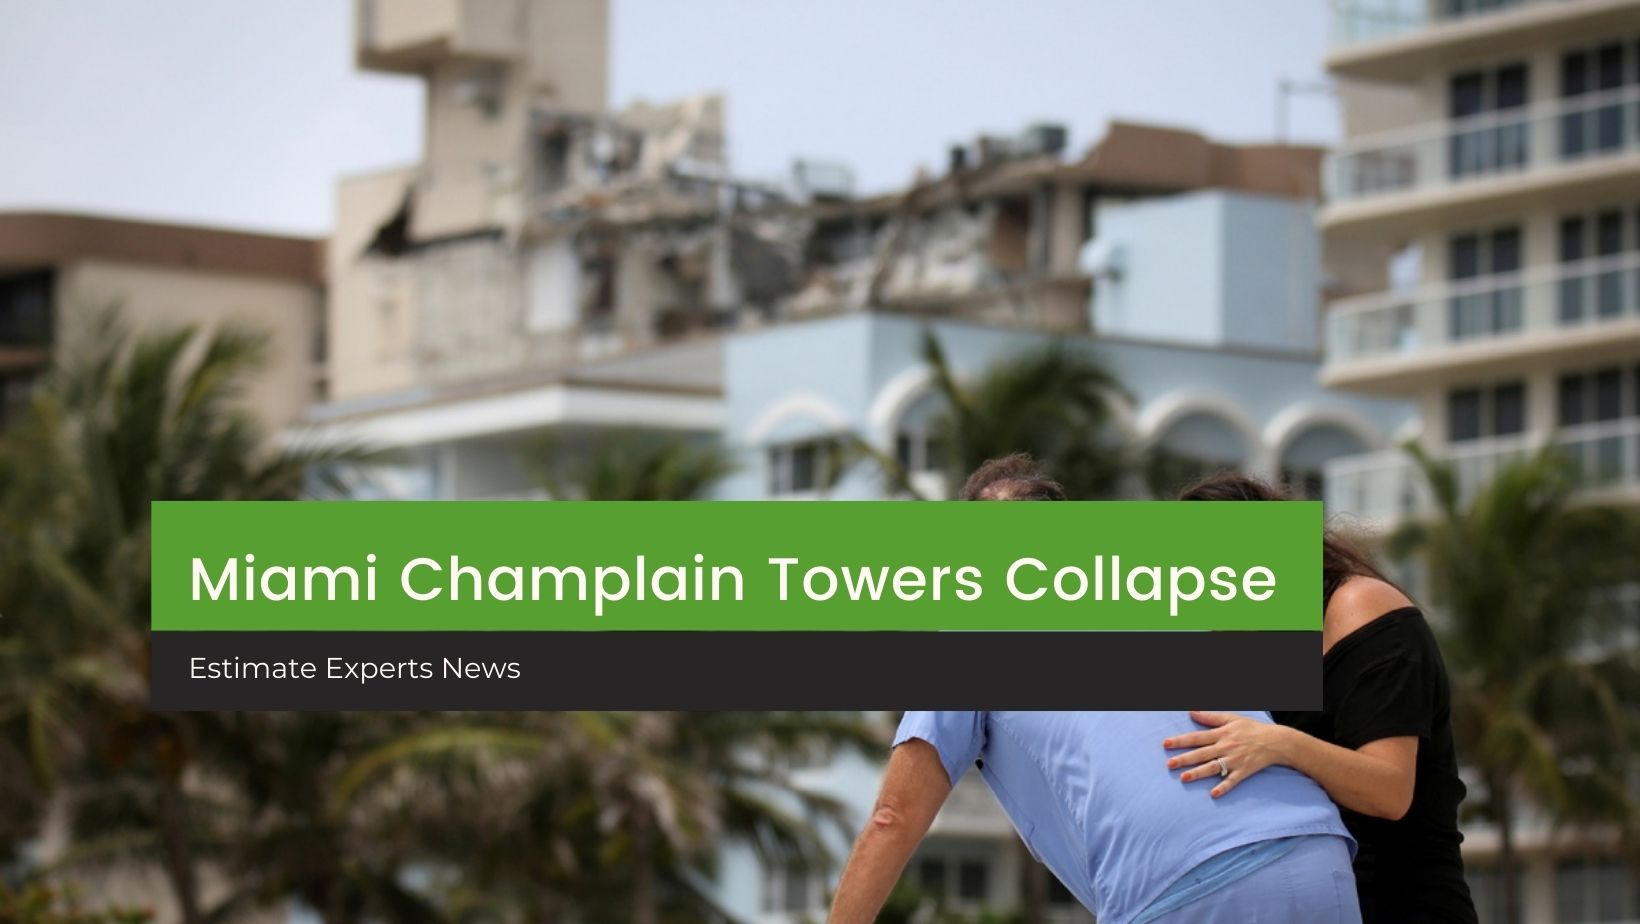 Life after the Champlain Towers collapse